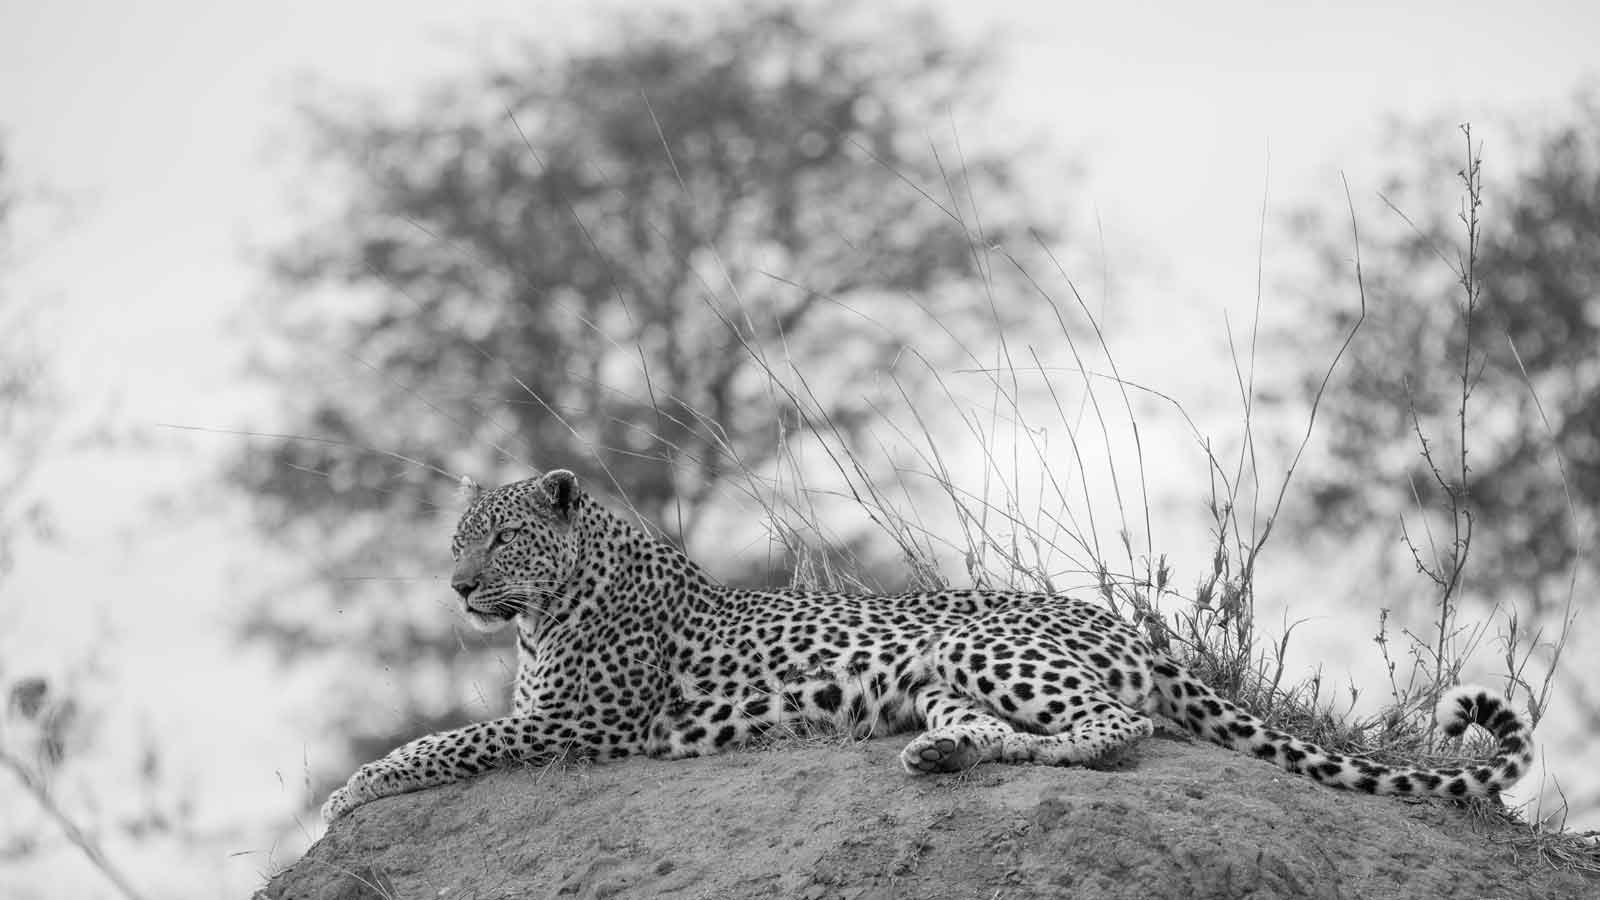 Leopard on Termite Mound -Kevin Maclaughlin